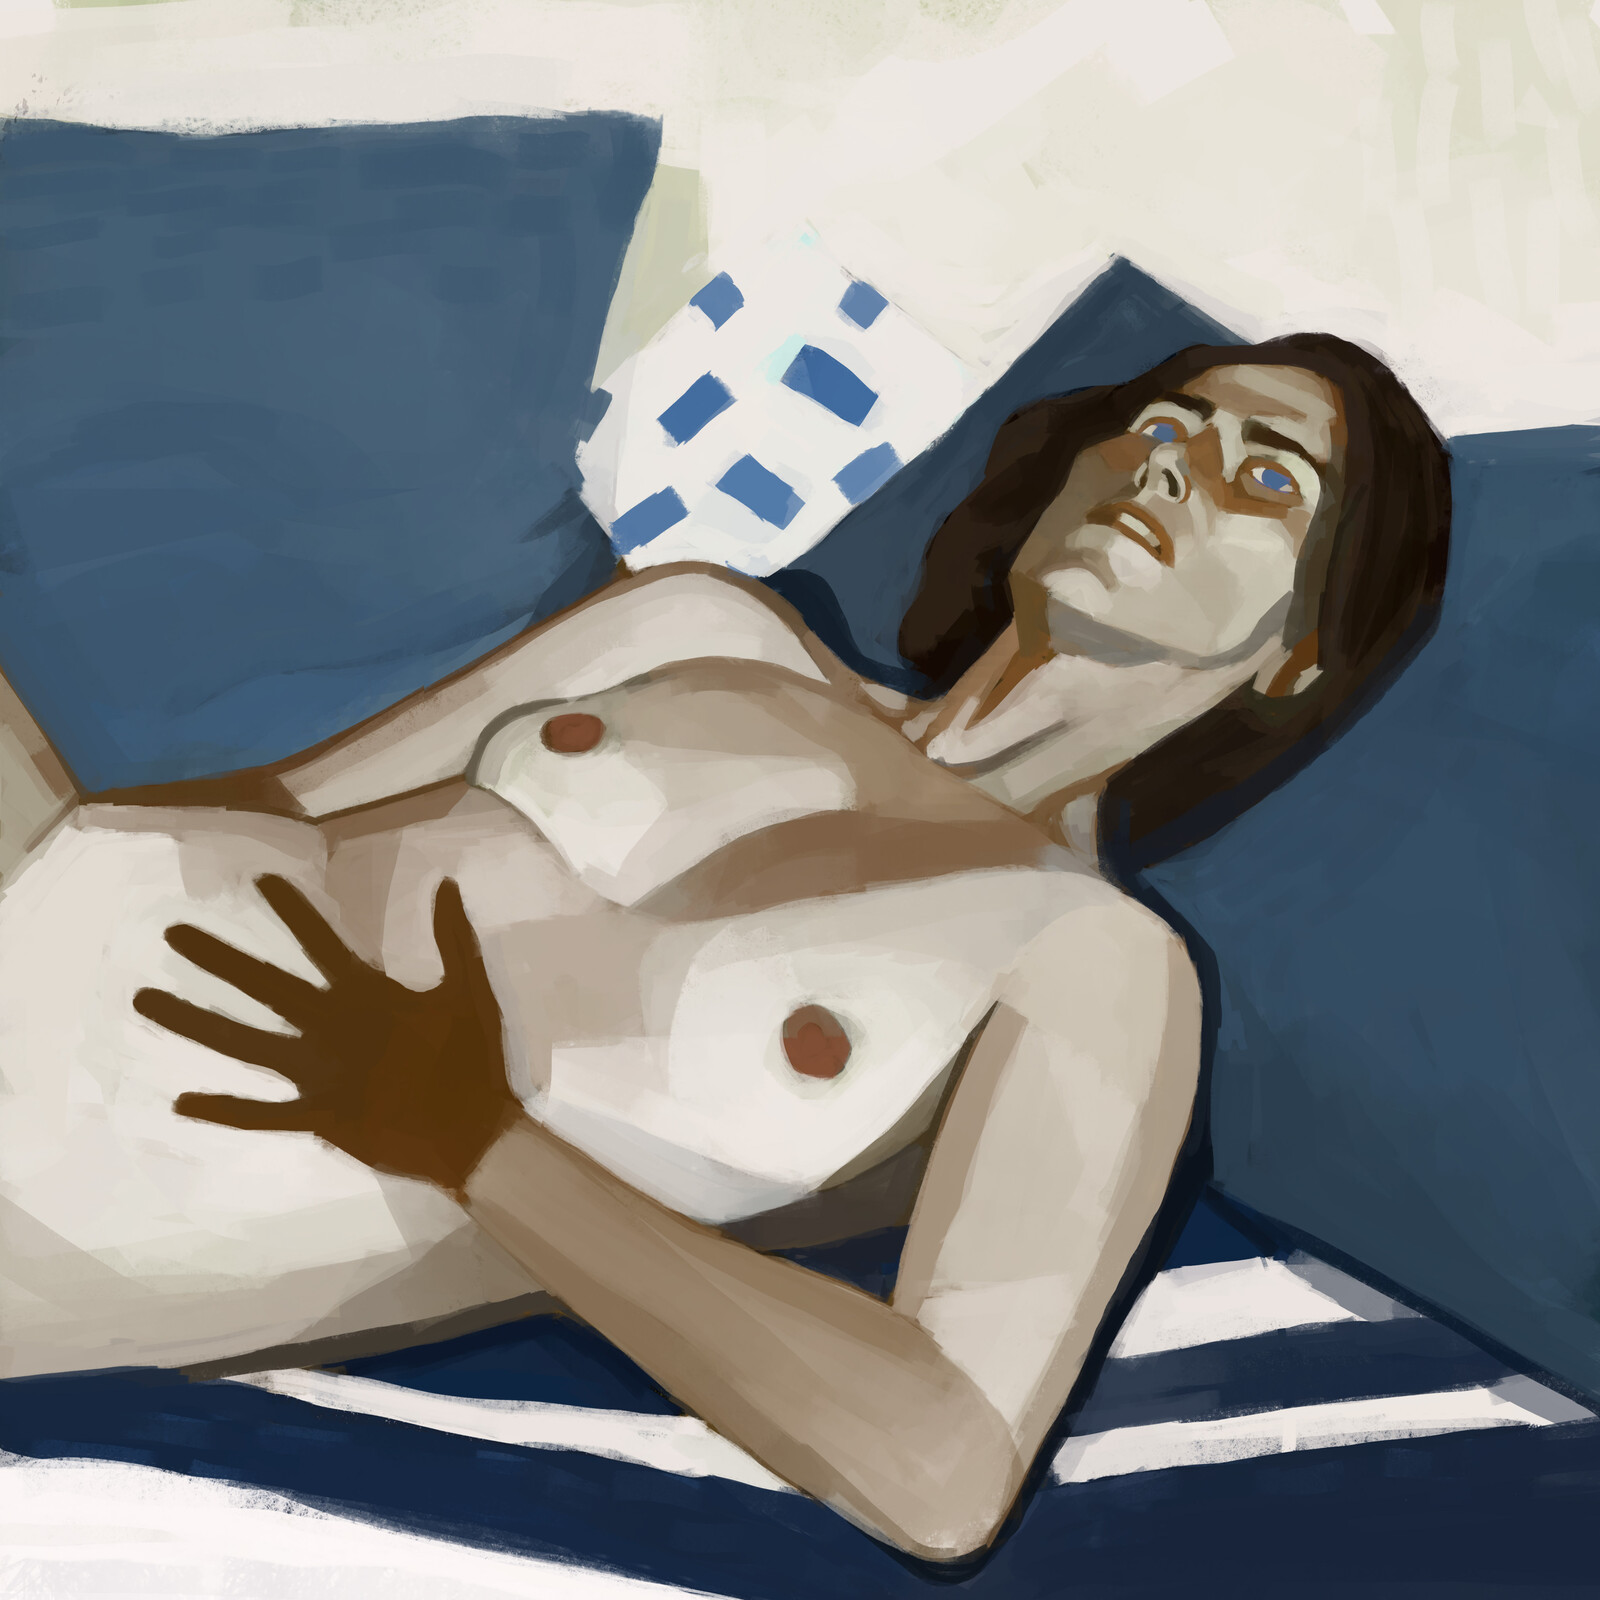 Nude on bed.